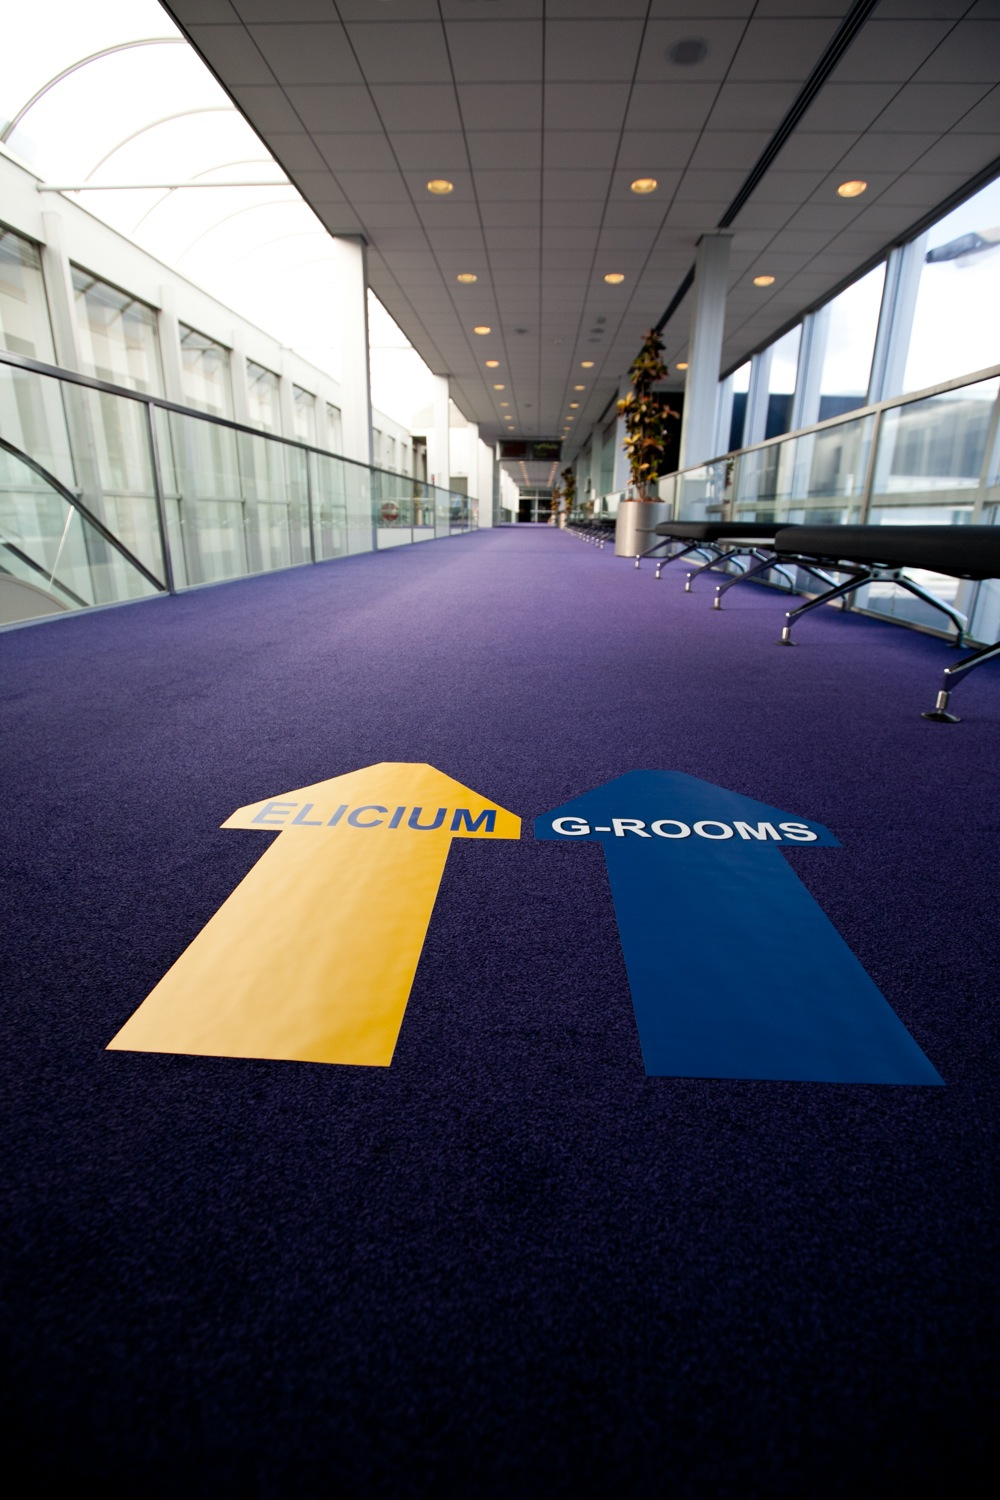 14th World Conference on Lung Cancer (July 3-7, 2011), Amsterdam, The Netherlands